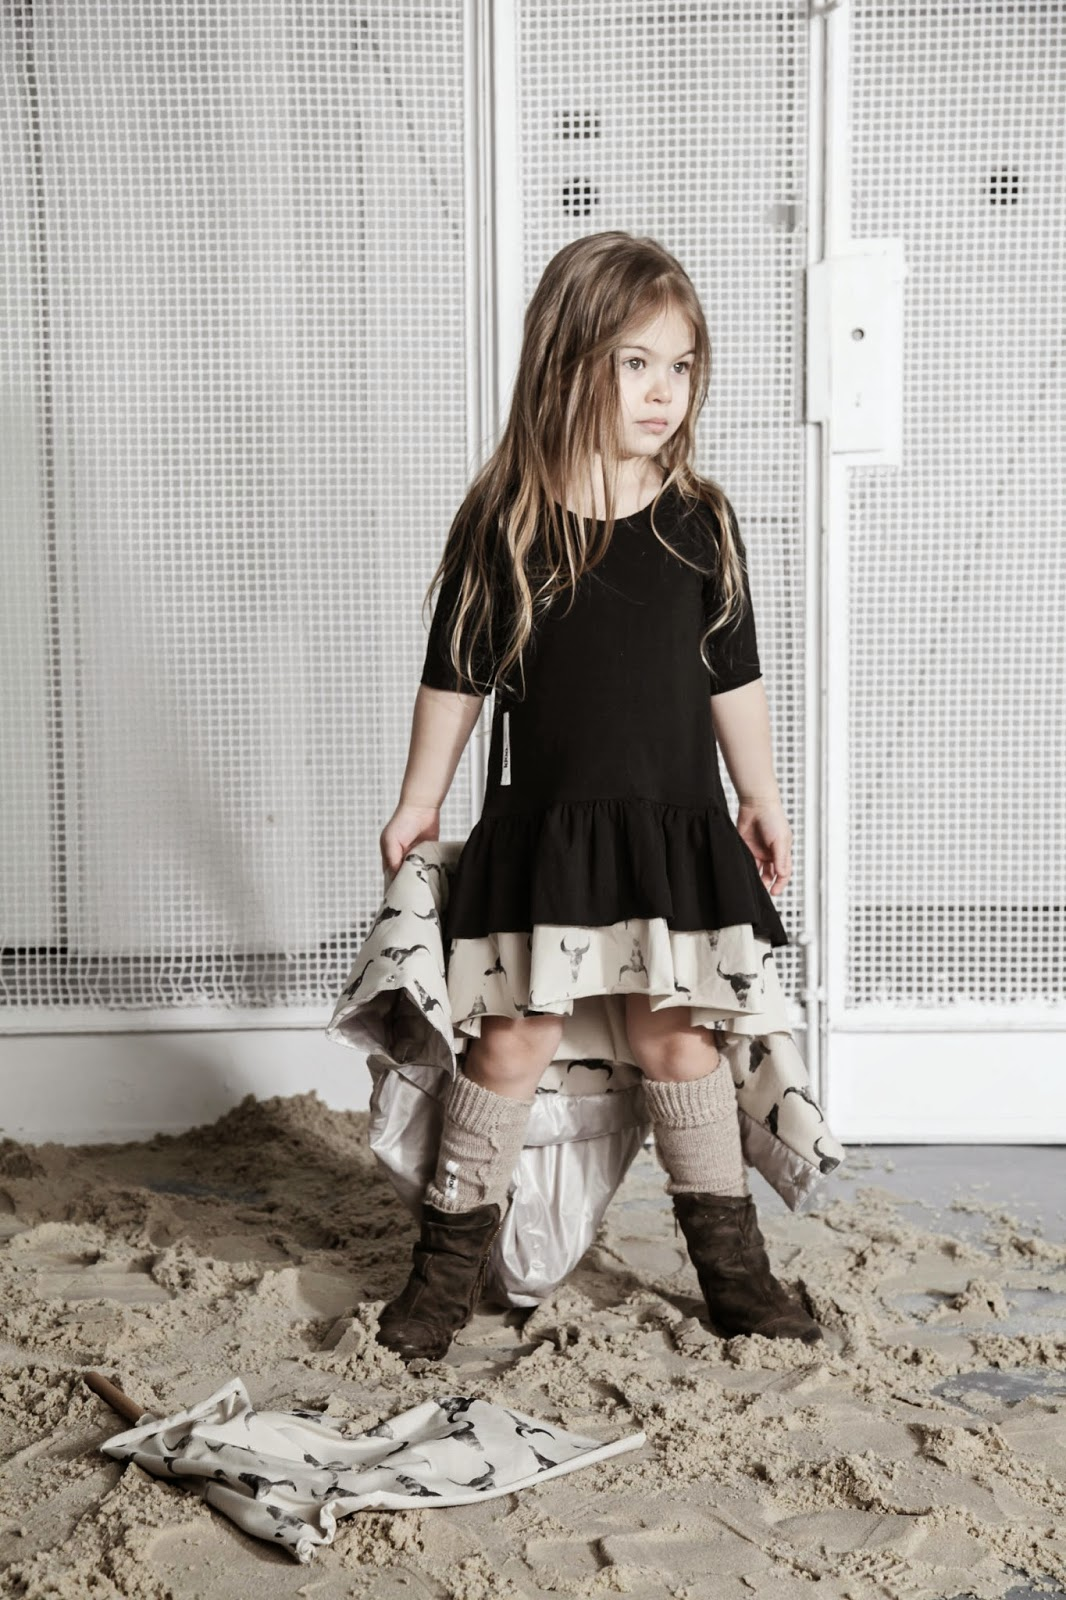 Kloo by Booso - Polish kids fashion spring-summer 2015 - black dress bull's heads